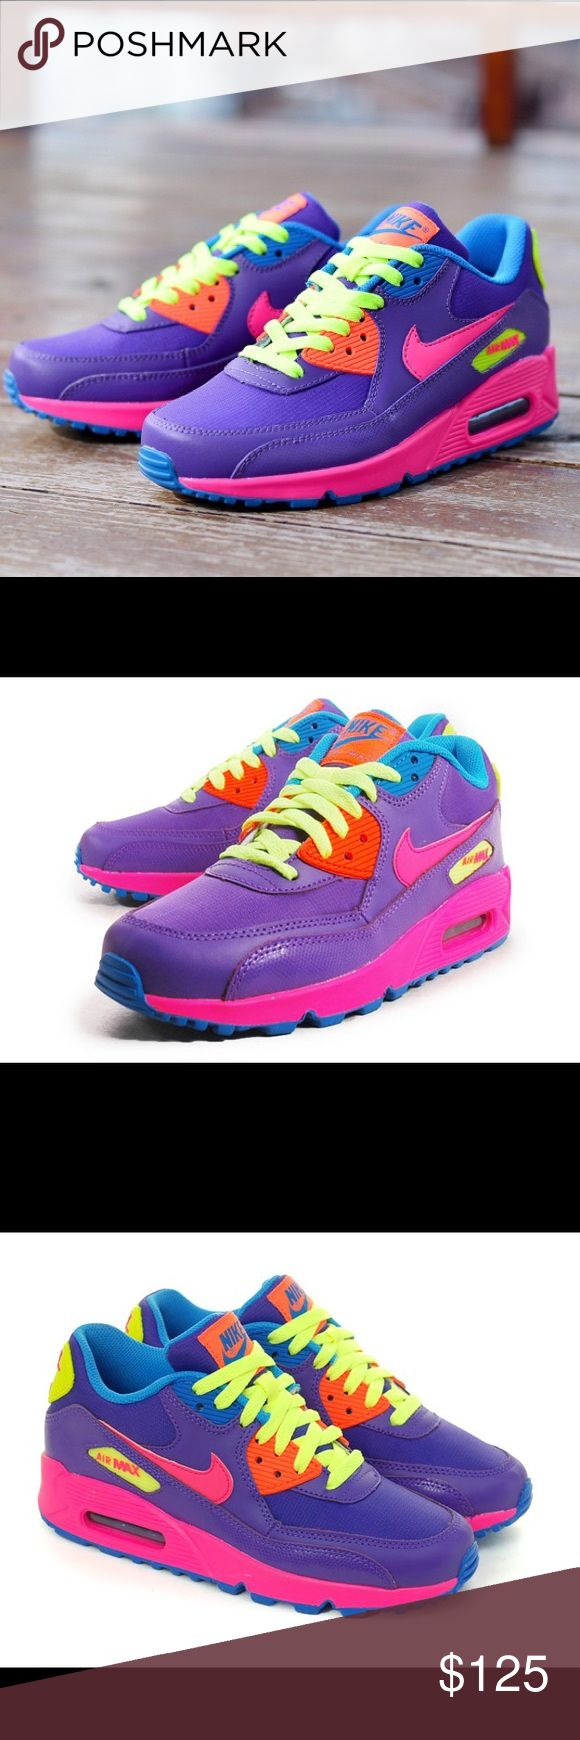 NIKE AIR MAX 90 SHOES SIZE 7.5 SHOES Shoes are a size 6 youth. Which is a women's size 7.5. I posted a sizing chart for your convenience. Brand new without box. 100% authentic Nike Shoes Sneakers